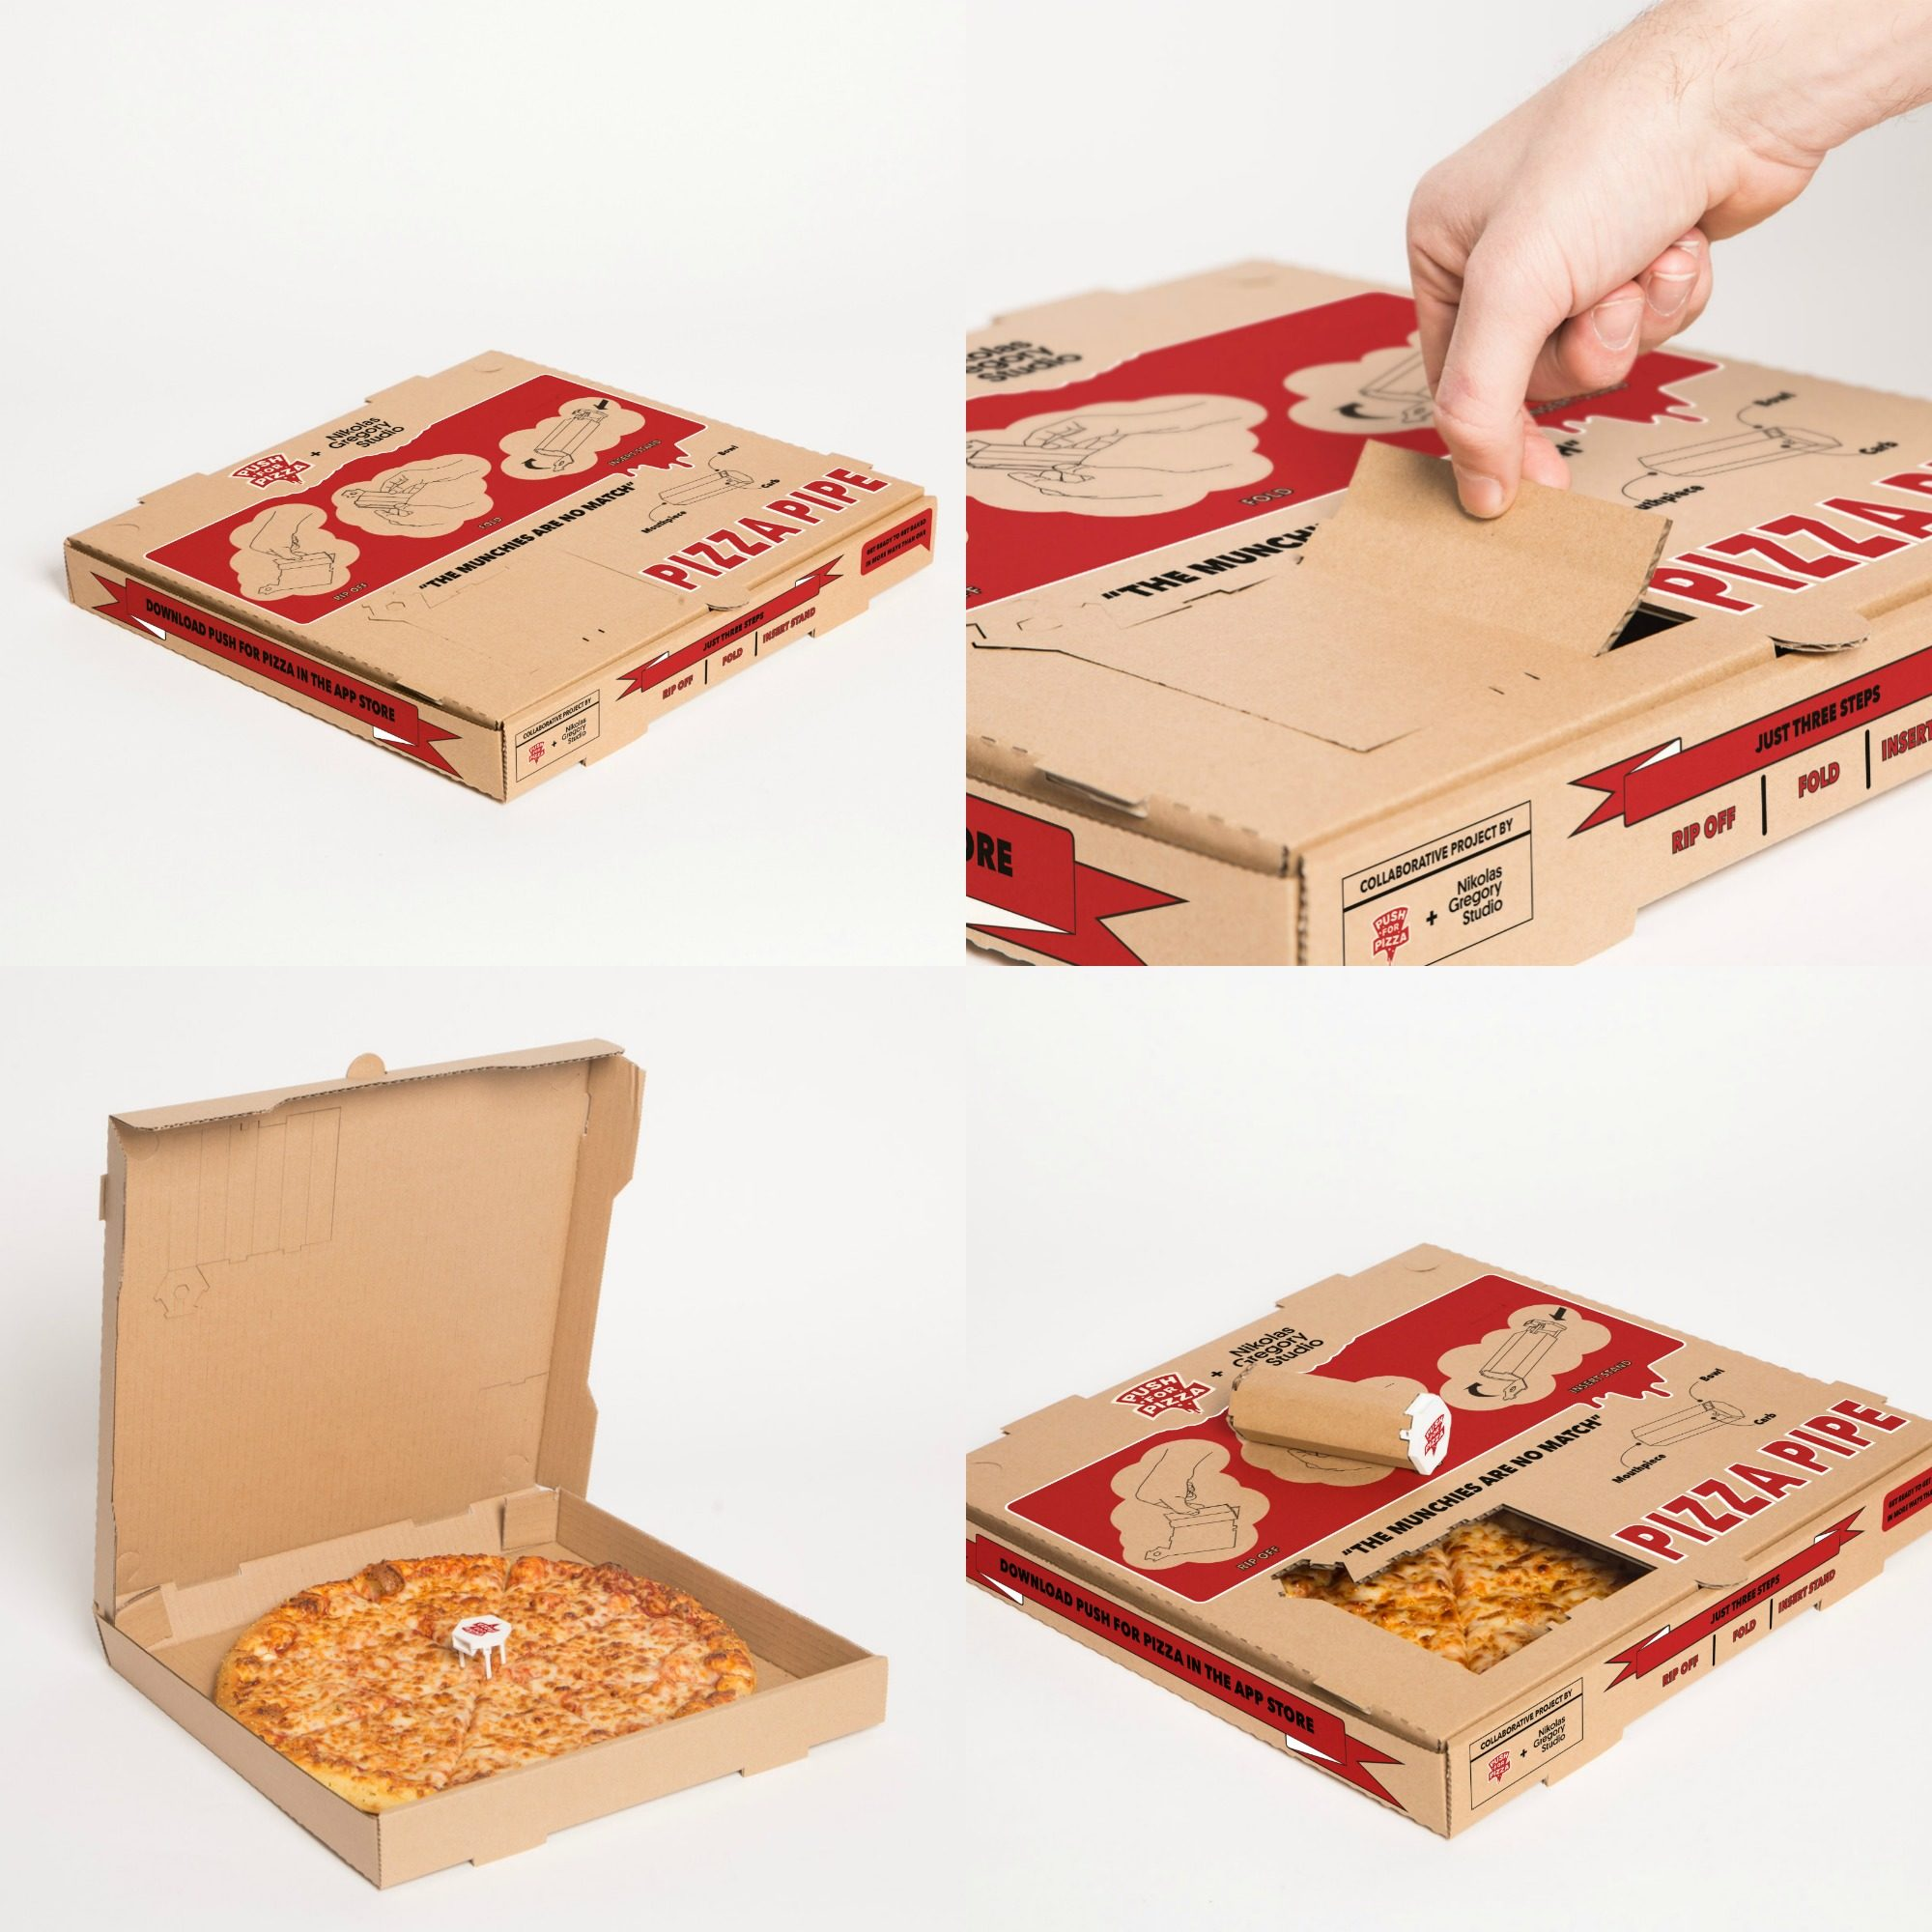 Transforming Pizza Box